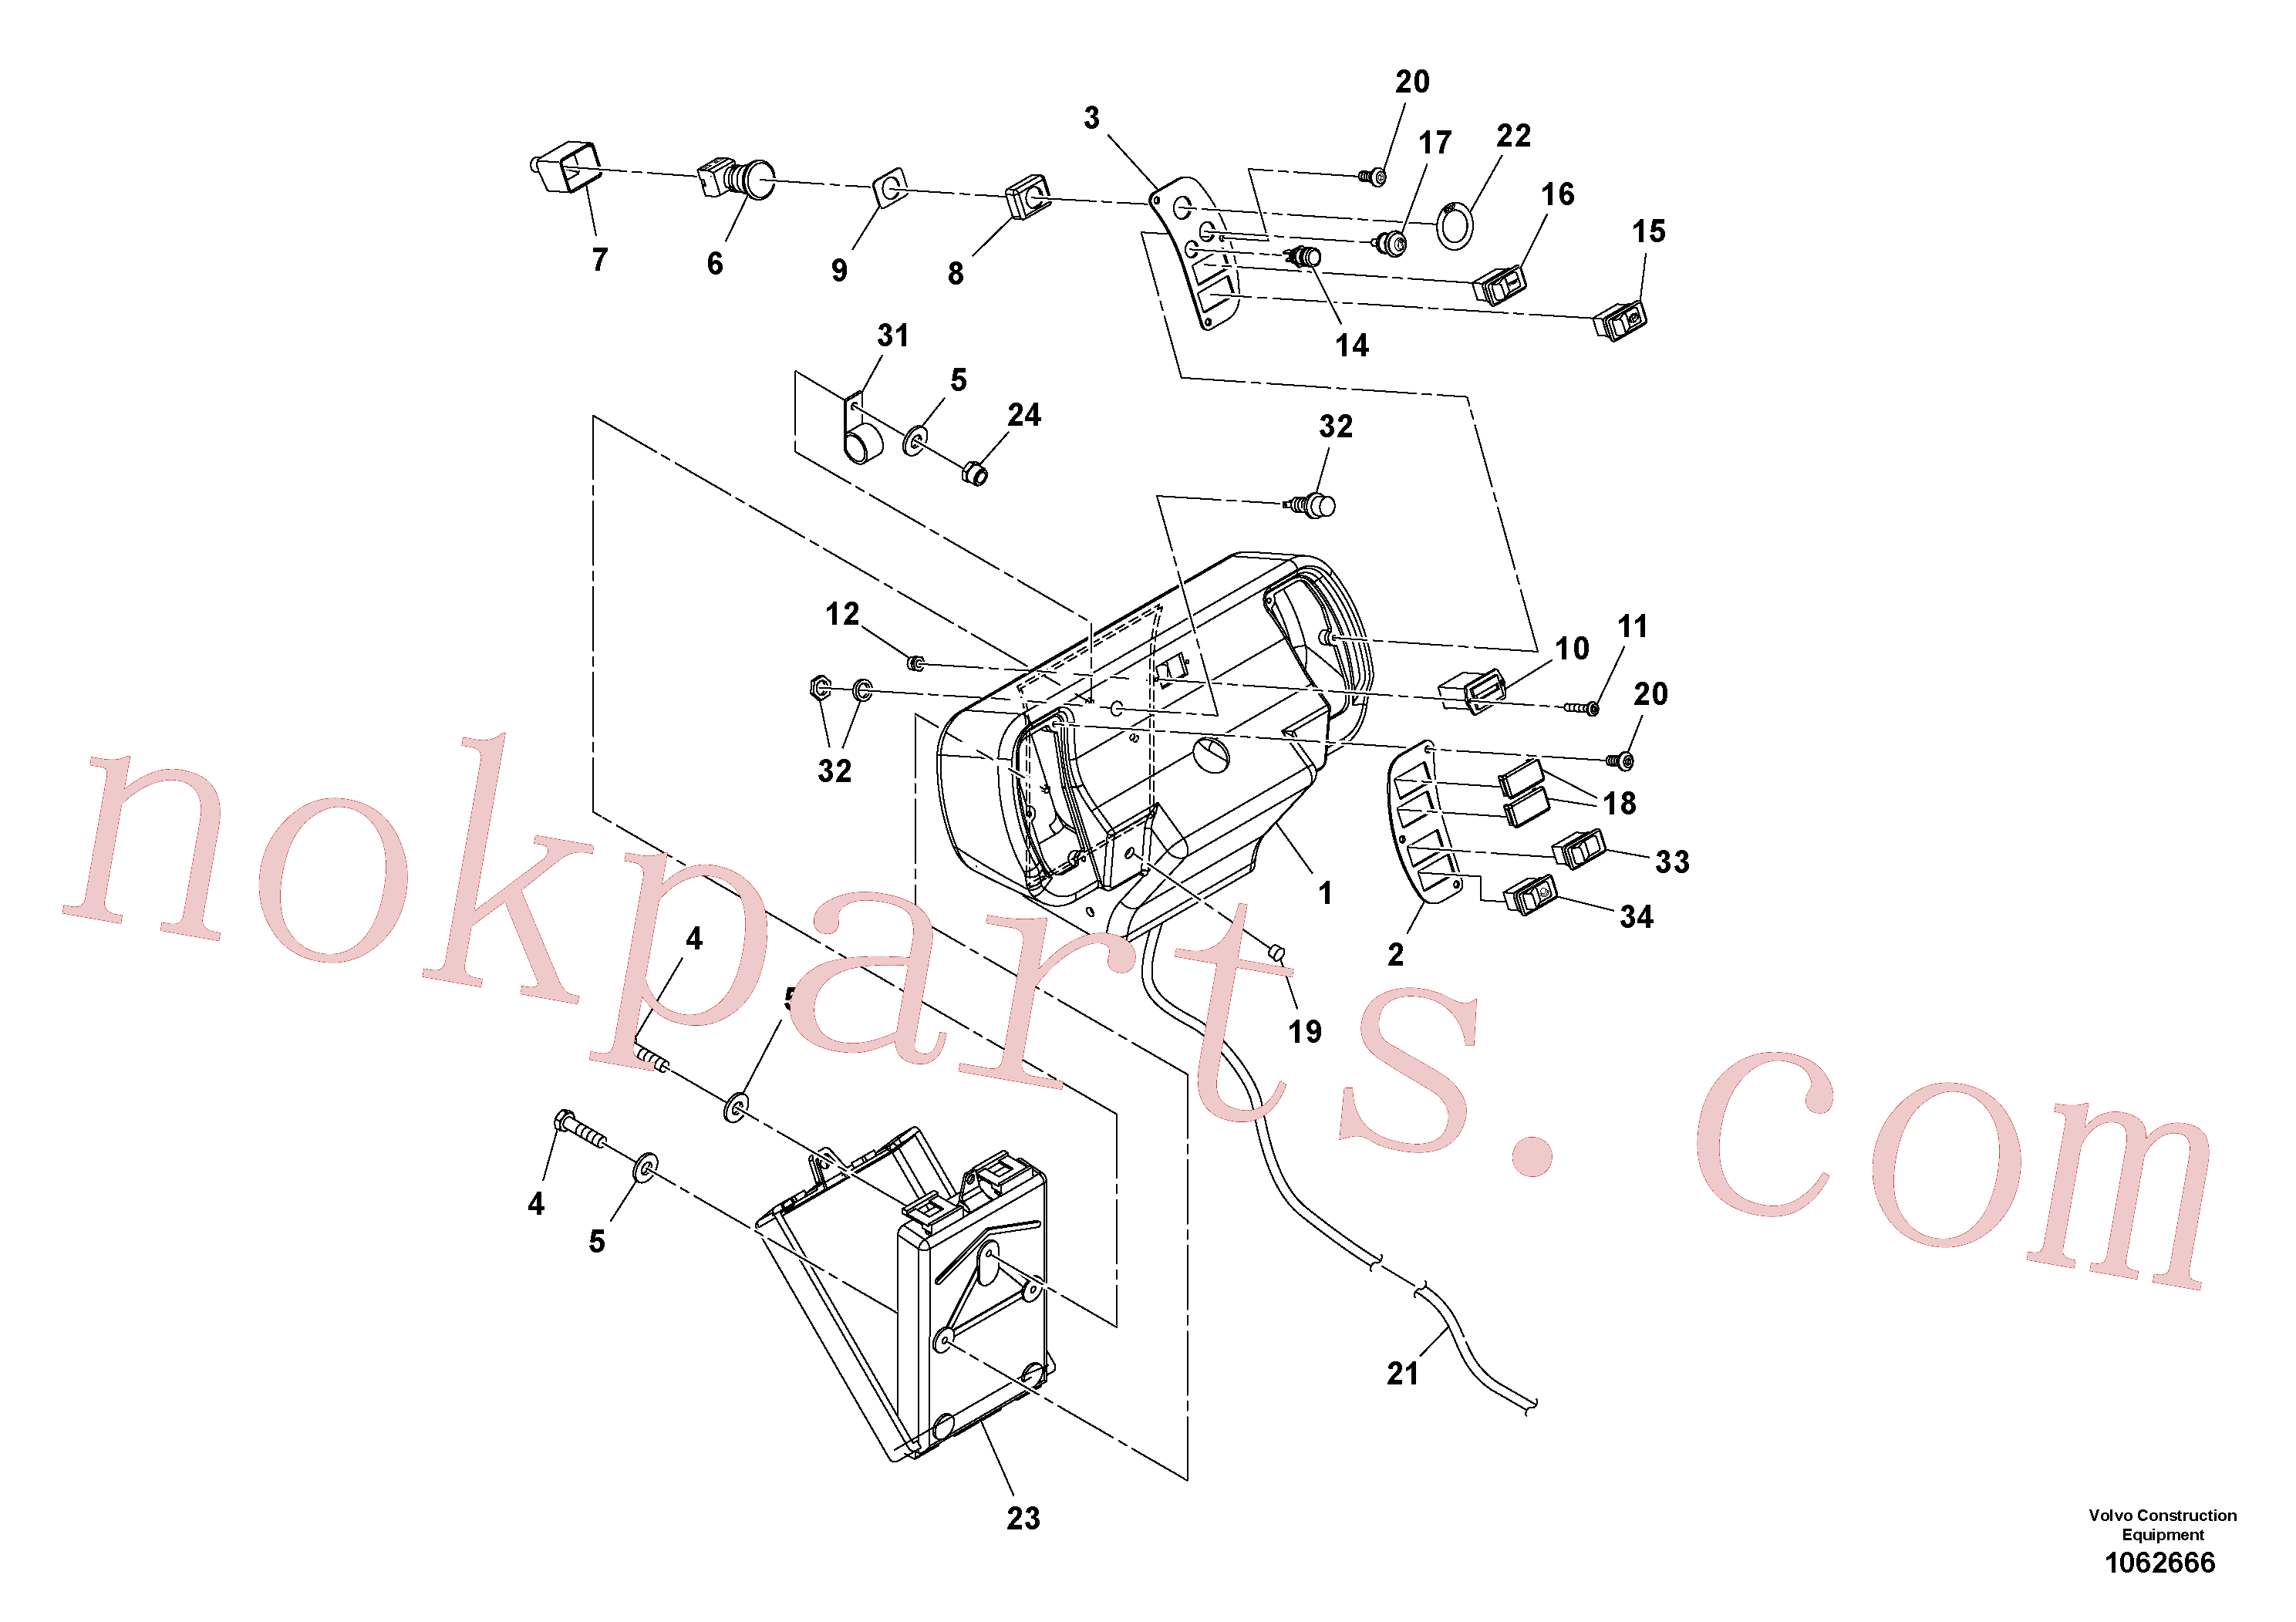 VOE12787620 for Volvo Console Assembly(1062666 assembly)